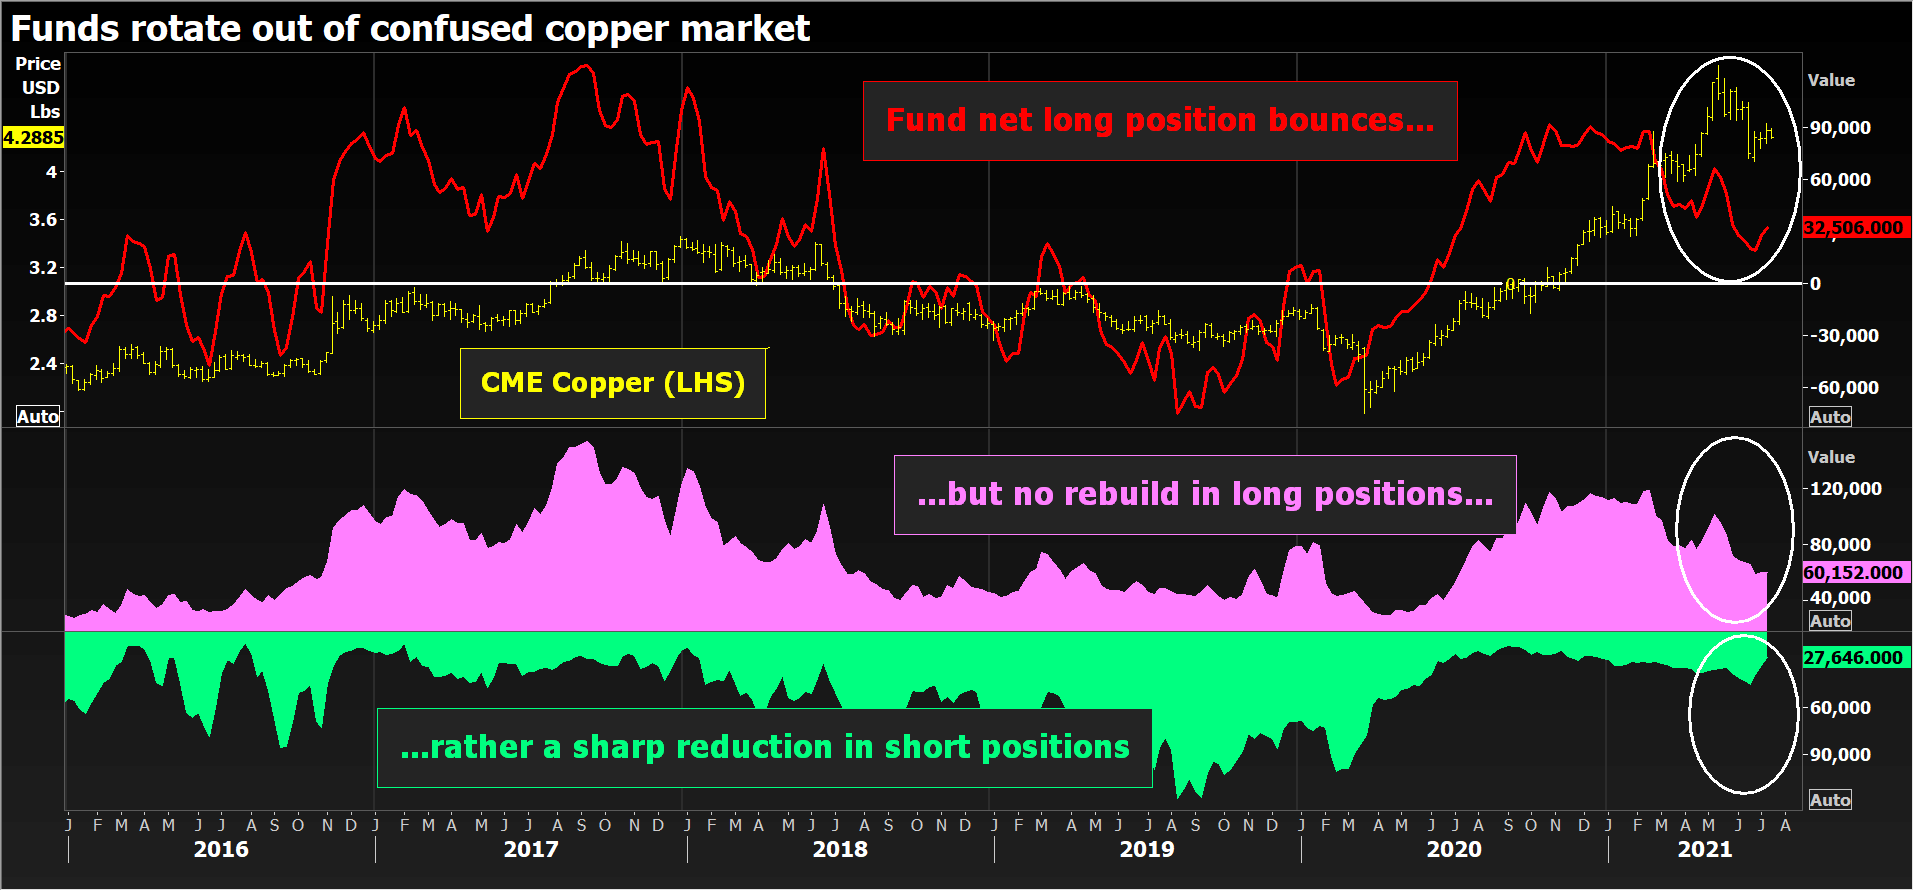 Funds rotate out confused copper market.